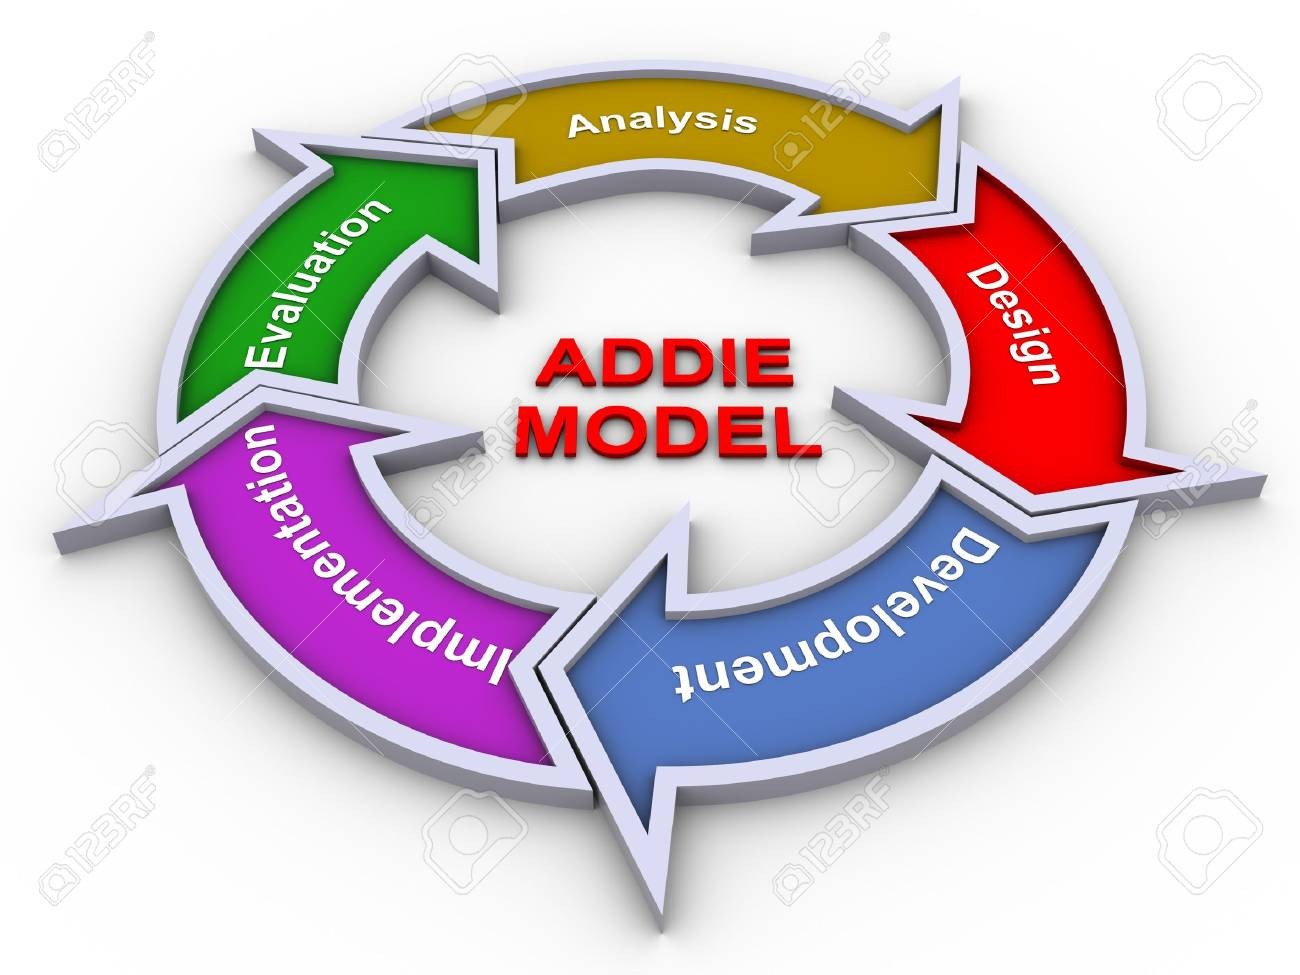 hight resolution of 3d render of addie model flow chart stock photo 11404253